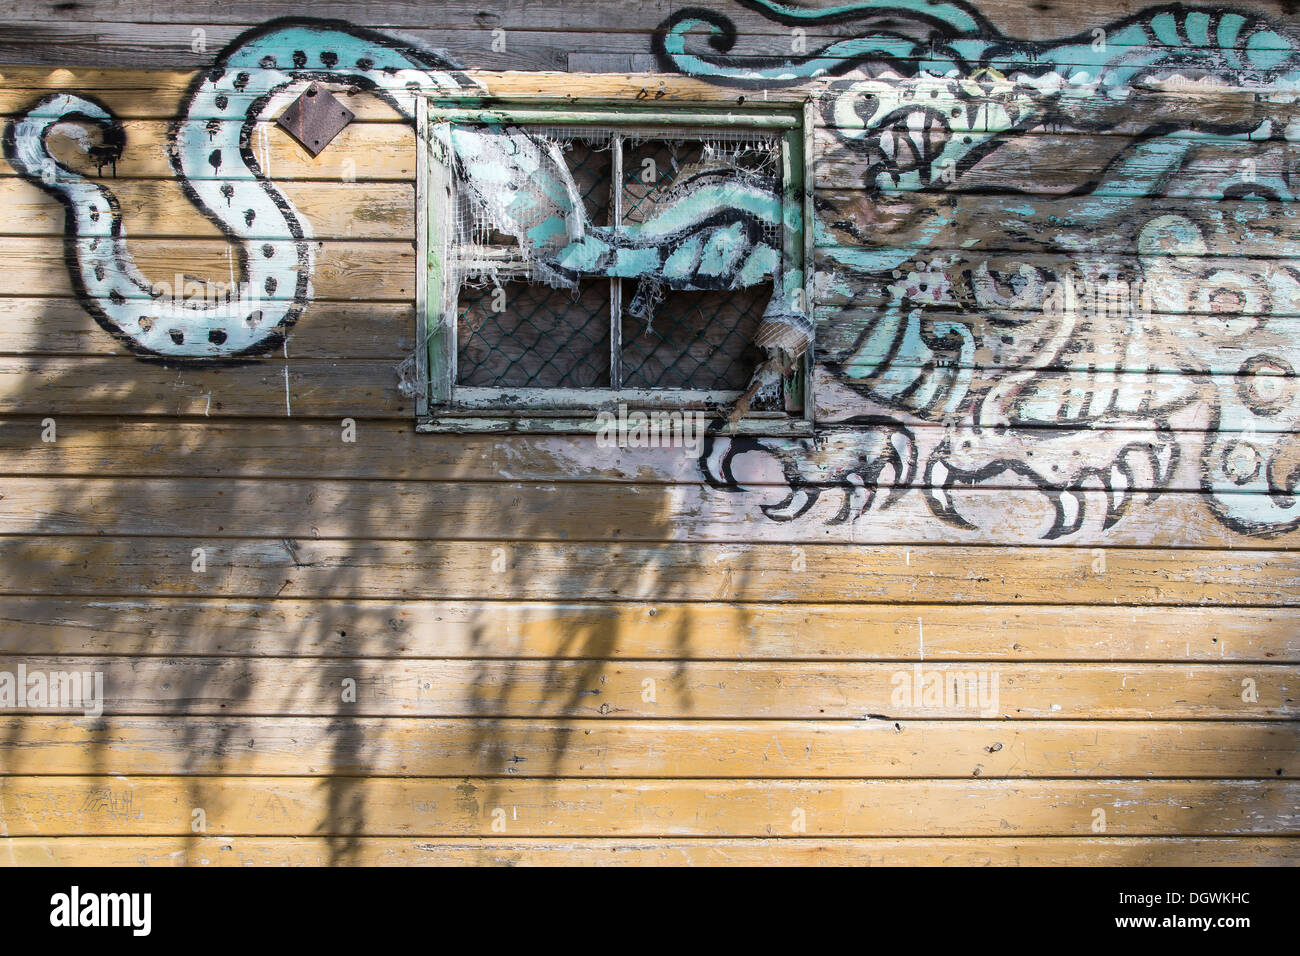 Dragon ( Loch Ness Monster) Graffiti on old caravan at Loch Ness in the Highlands of Scotland. - Stock Image